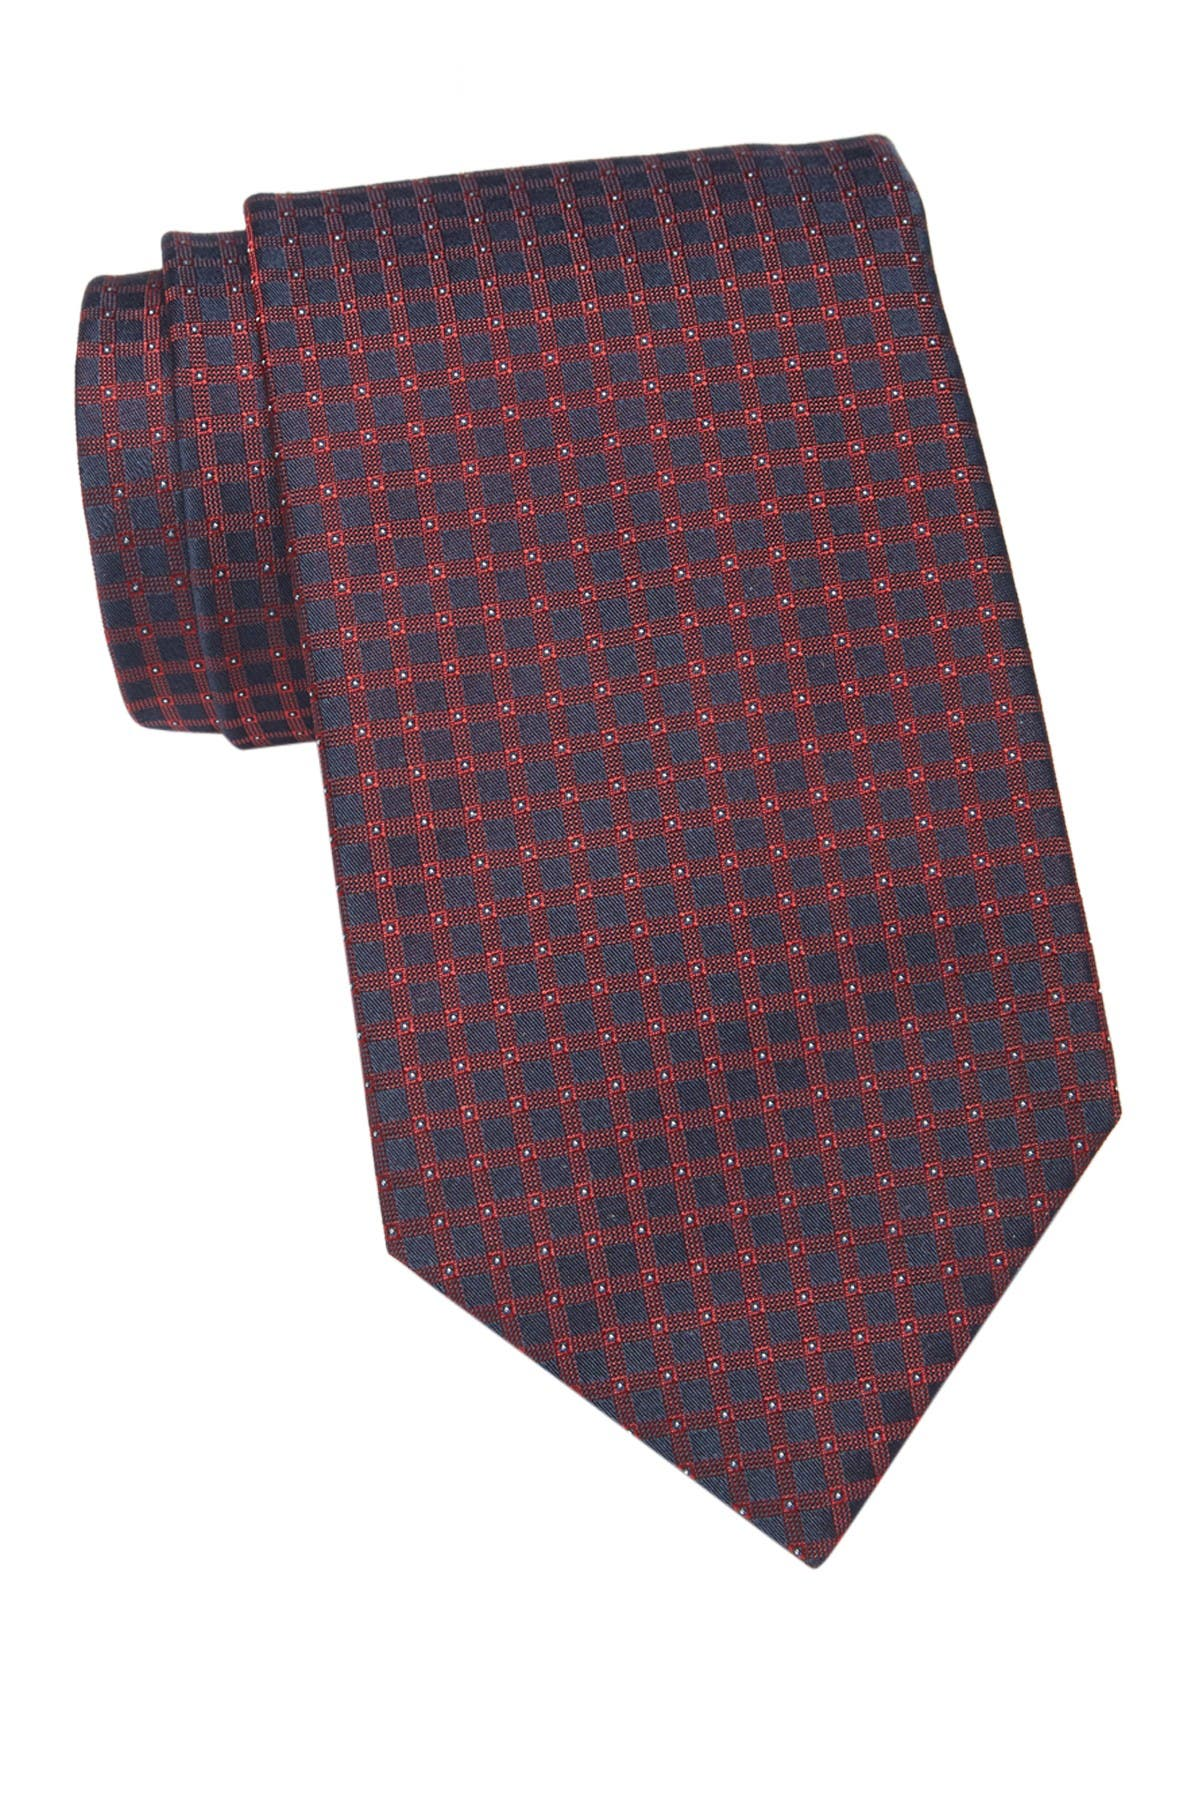 Image of BOSS Red Tie